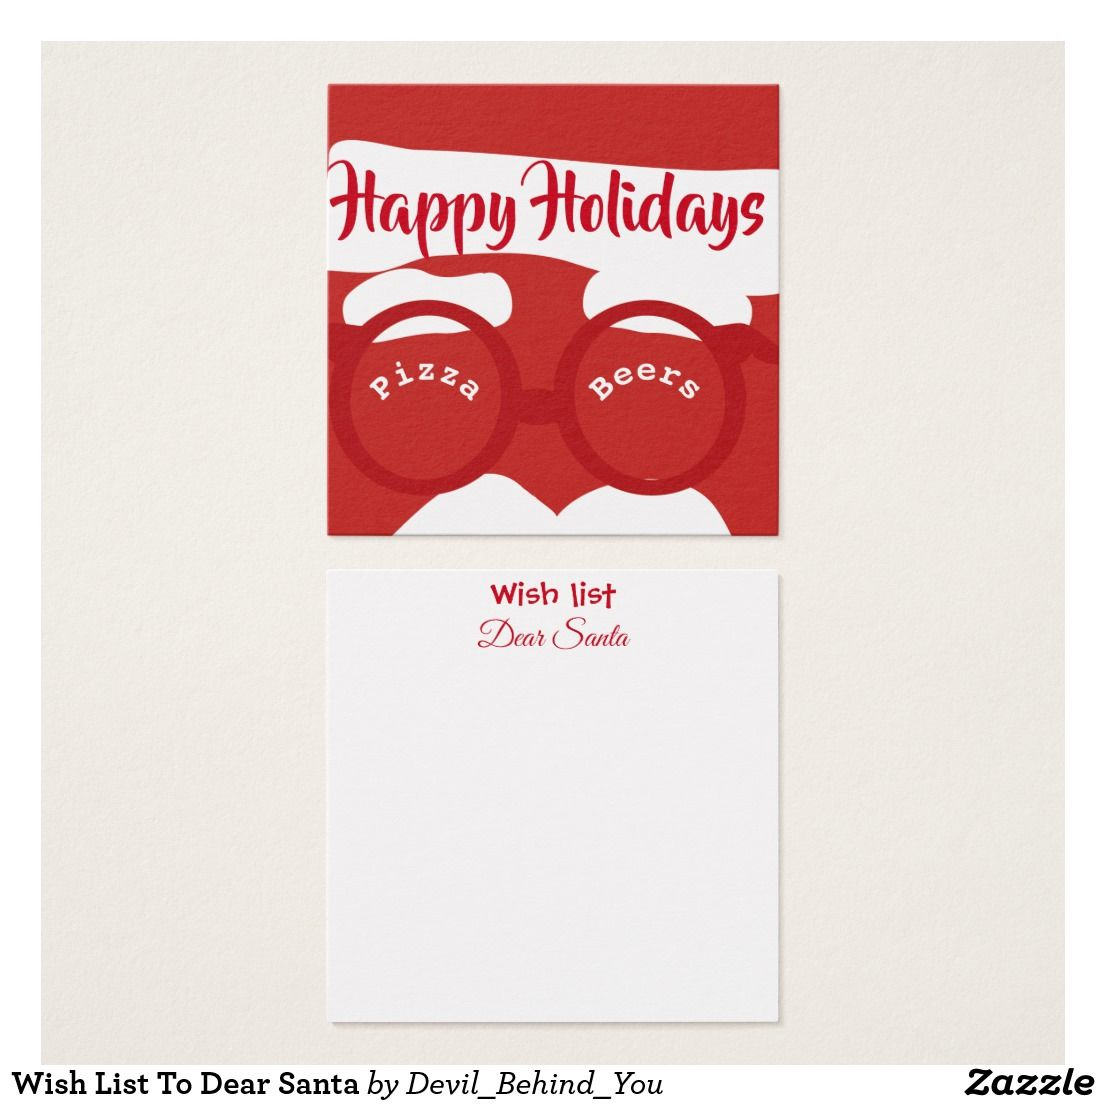 Wish list to dear santa square business card dby miscellaneous wish list to dear santa square business card colourmoves